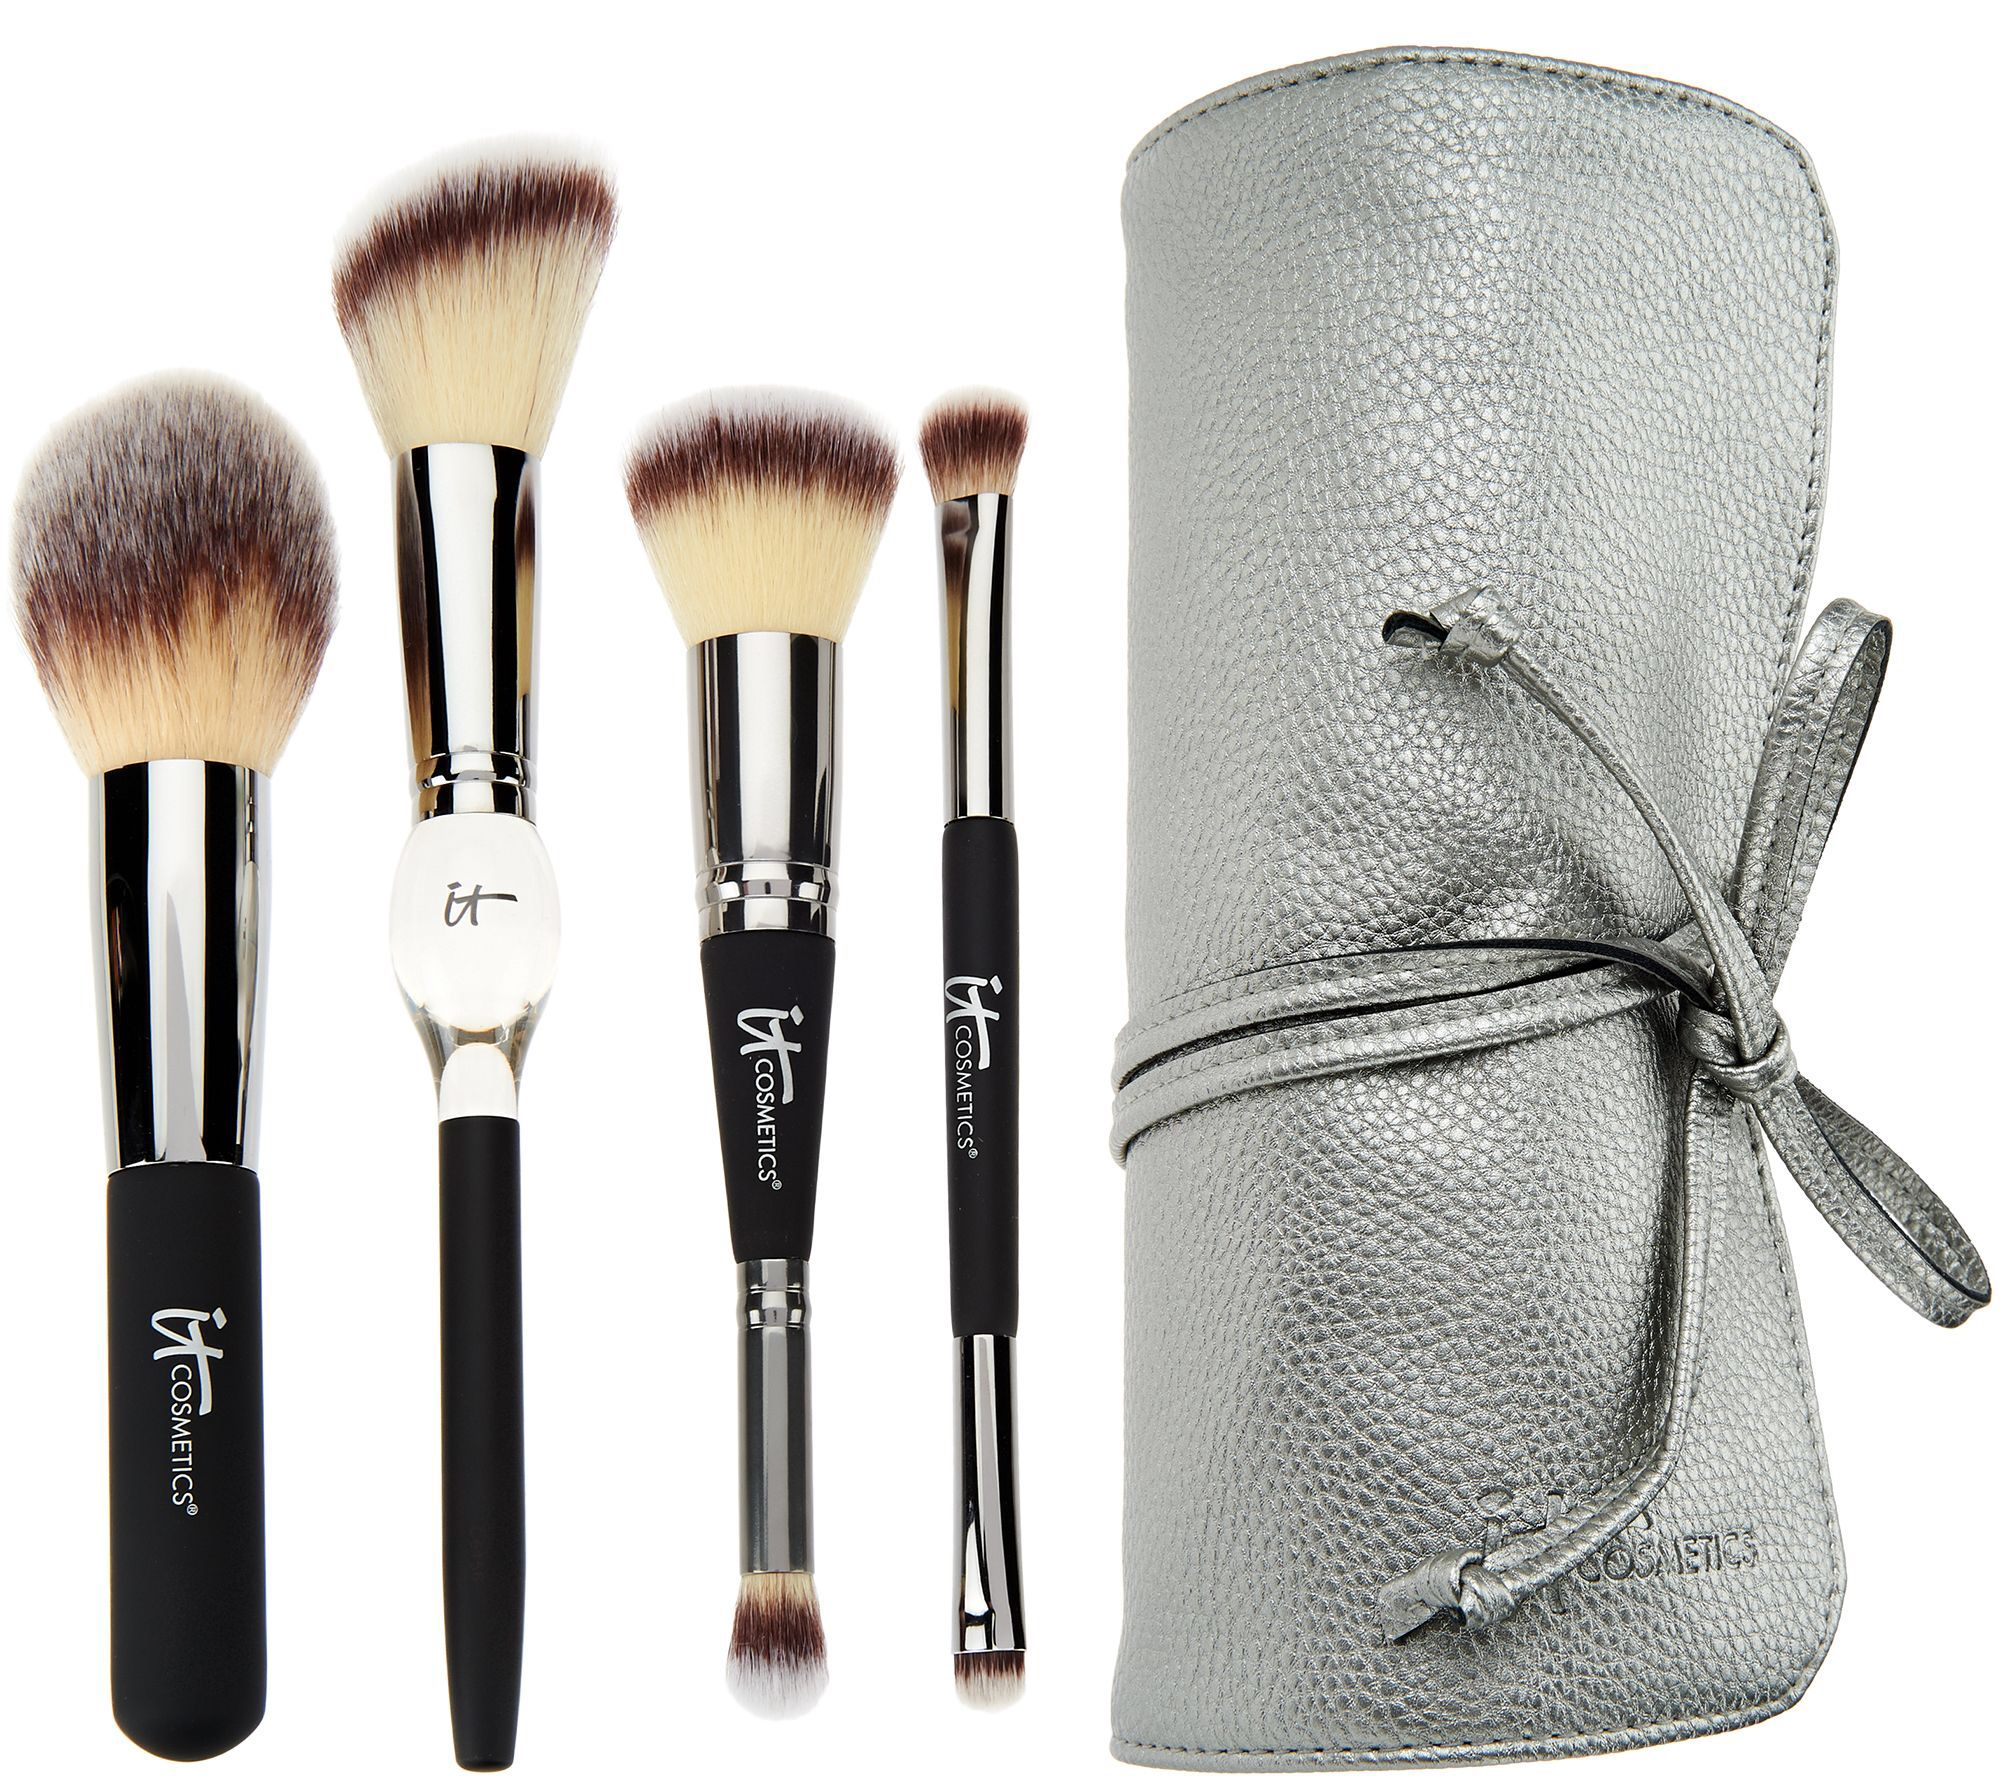 IT Cosmetics Special Edition Luxe Brush Set with Brush